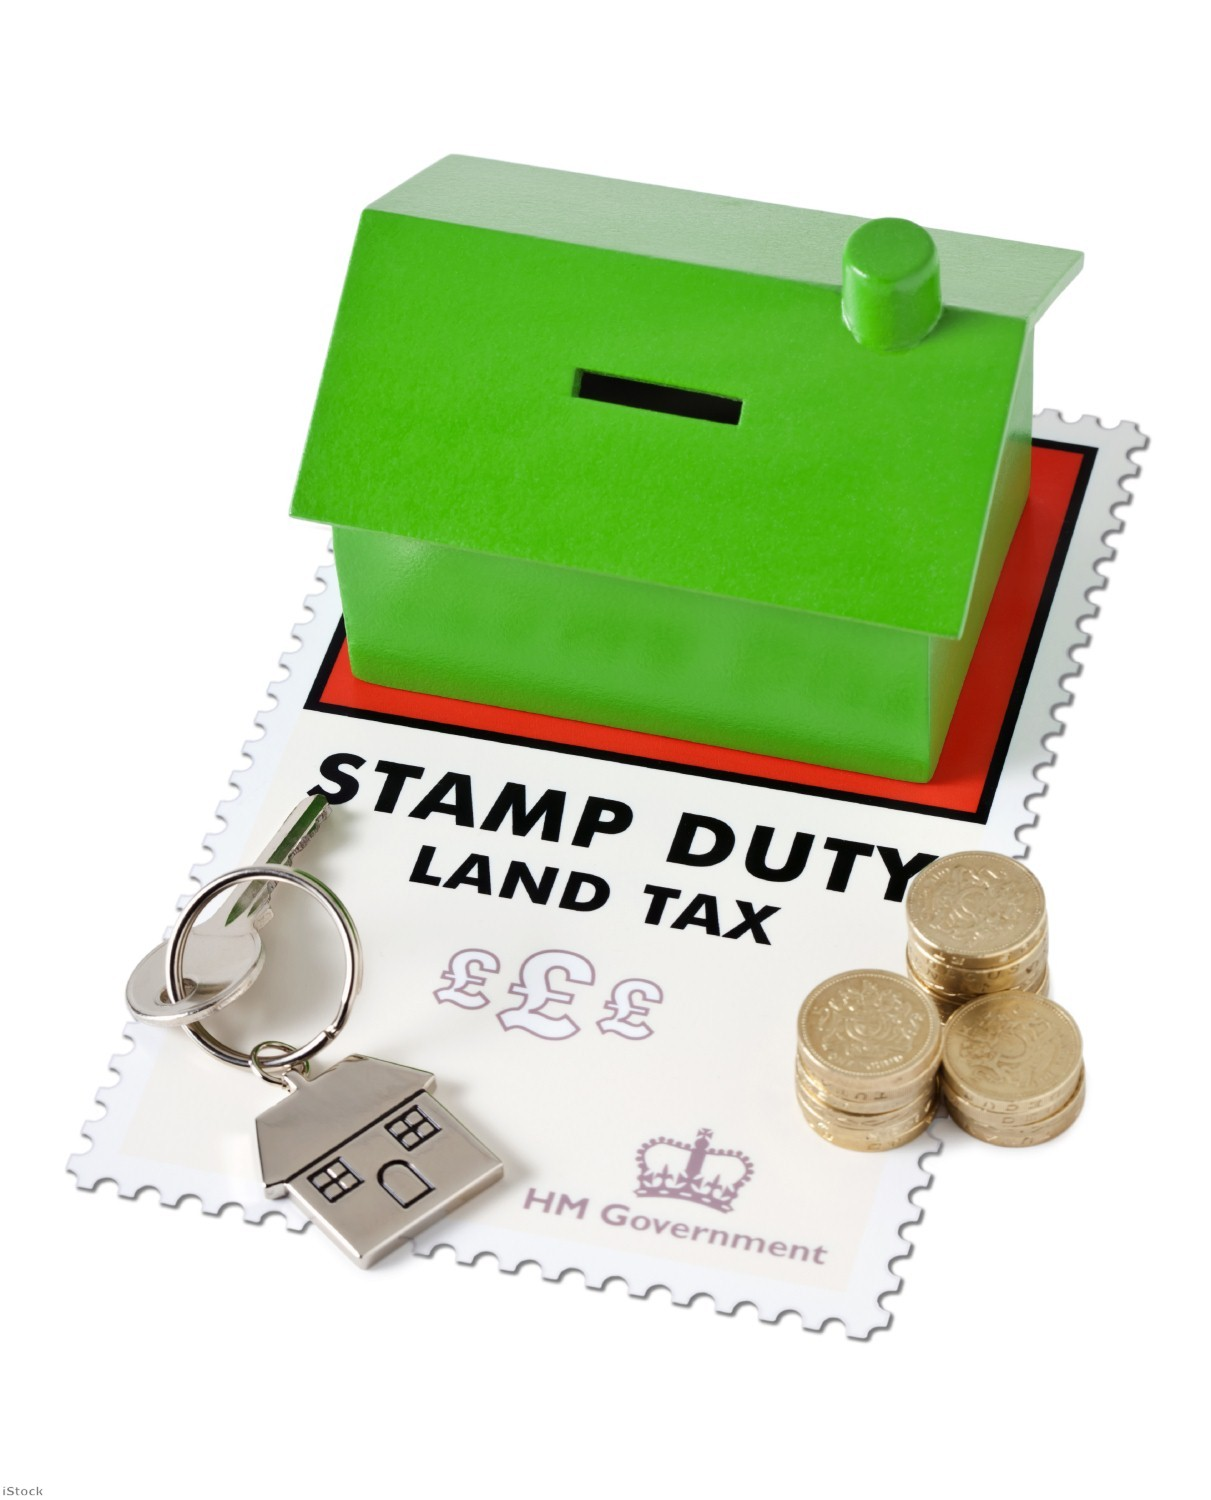 Government does not plan downsizing stamp duty relief